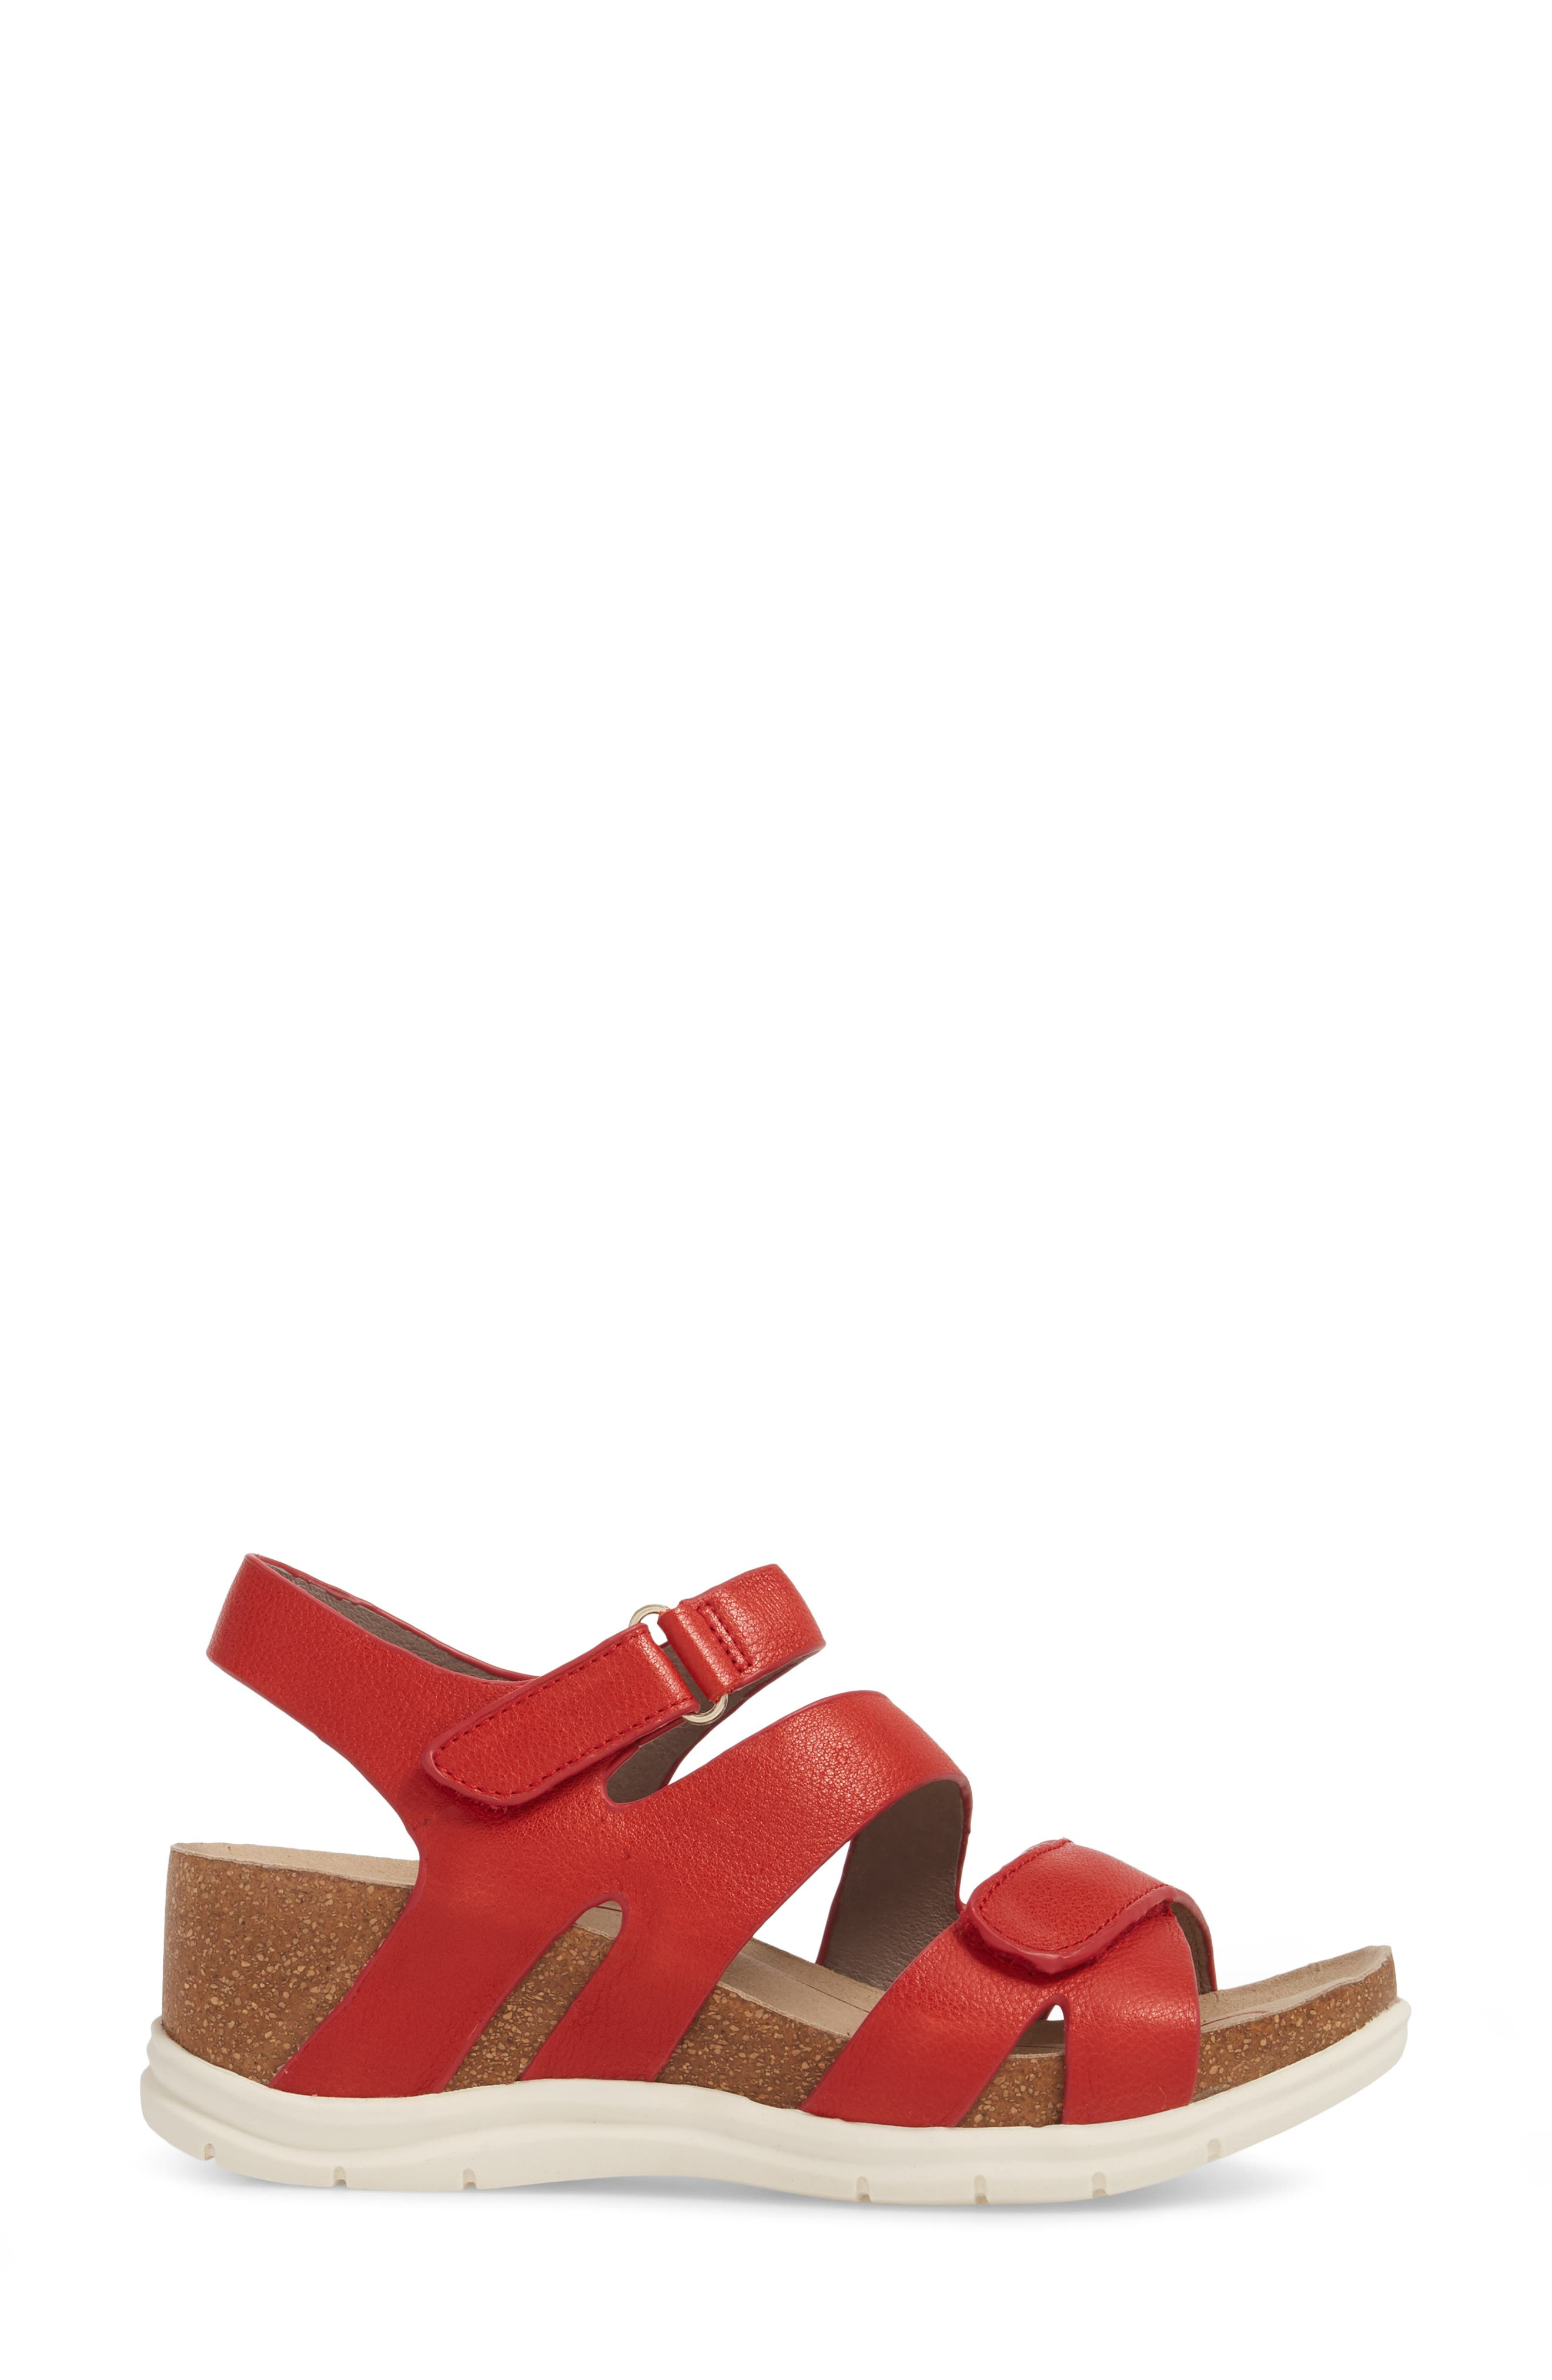 Passion Wedge Sandal,                             Alternate thumbnail 3, color,                             Fire Red Leather